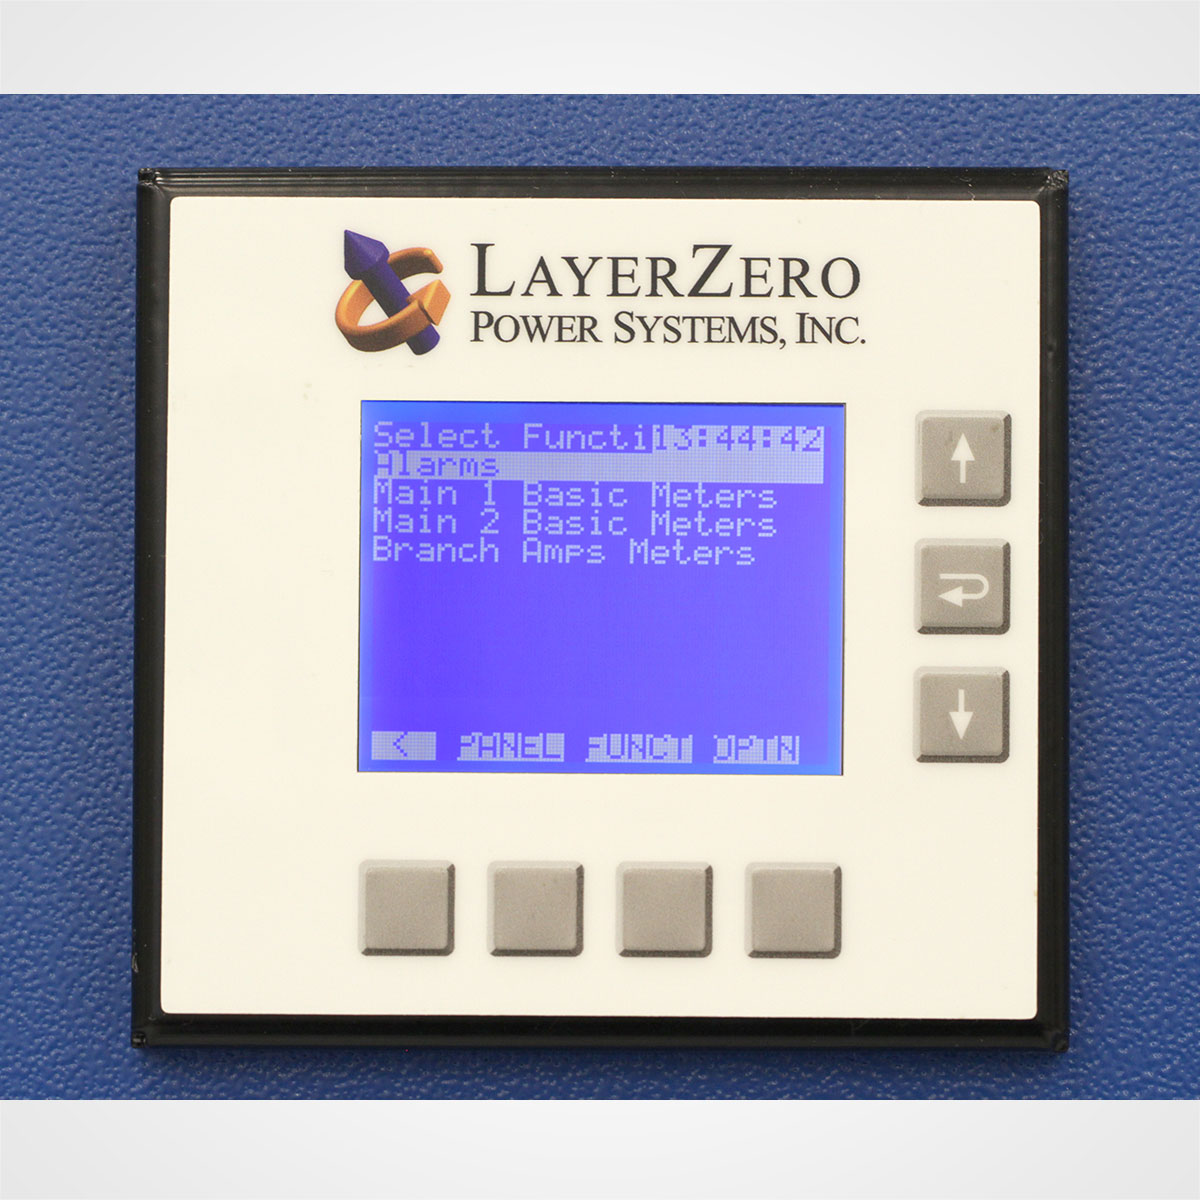 Two LayerZero Series 70: eRPP-FS Display.